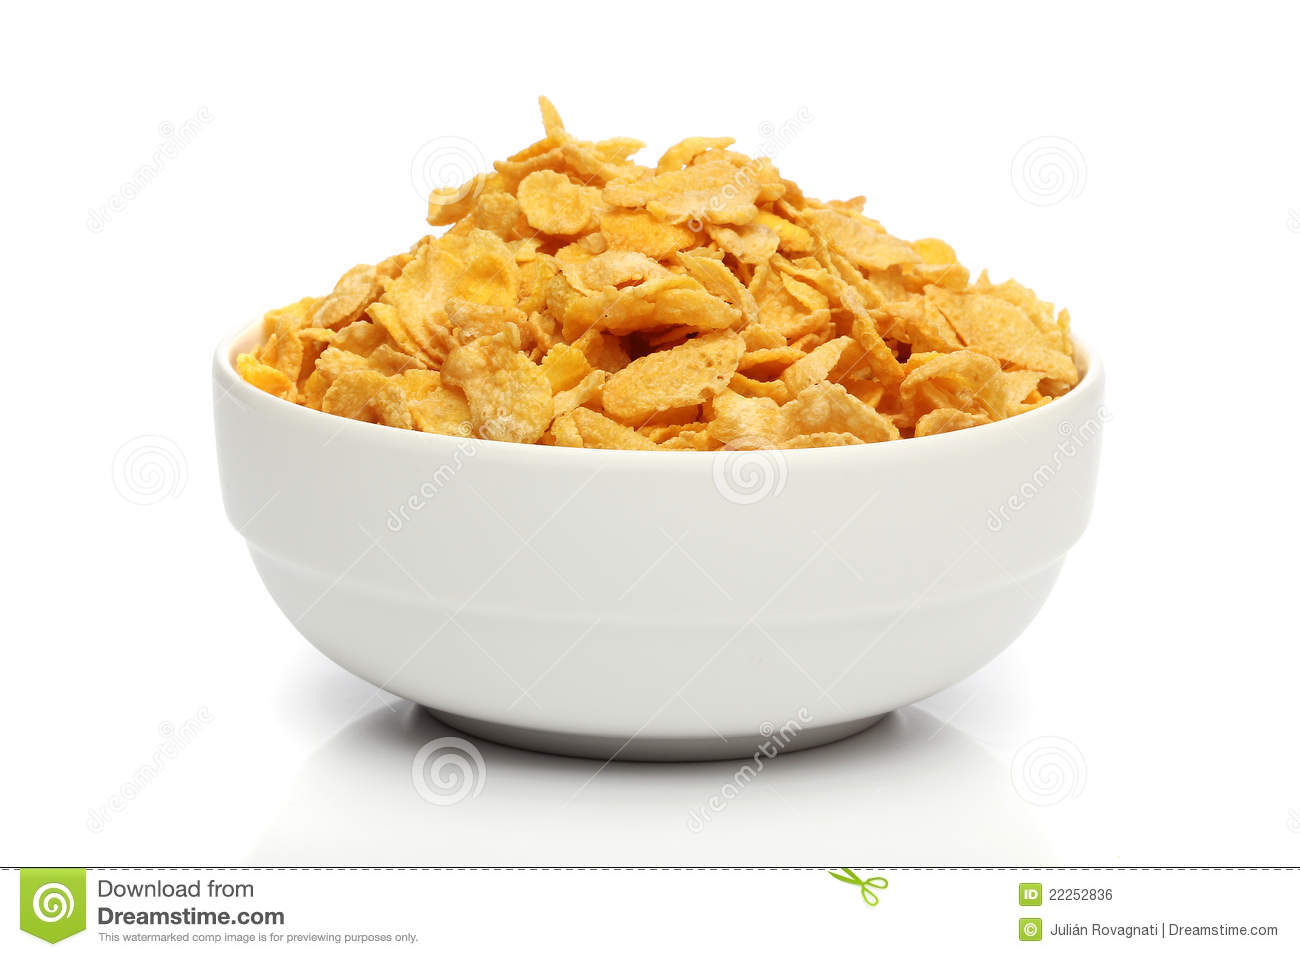 Pile of cornflakes on a bowl